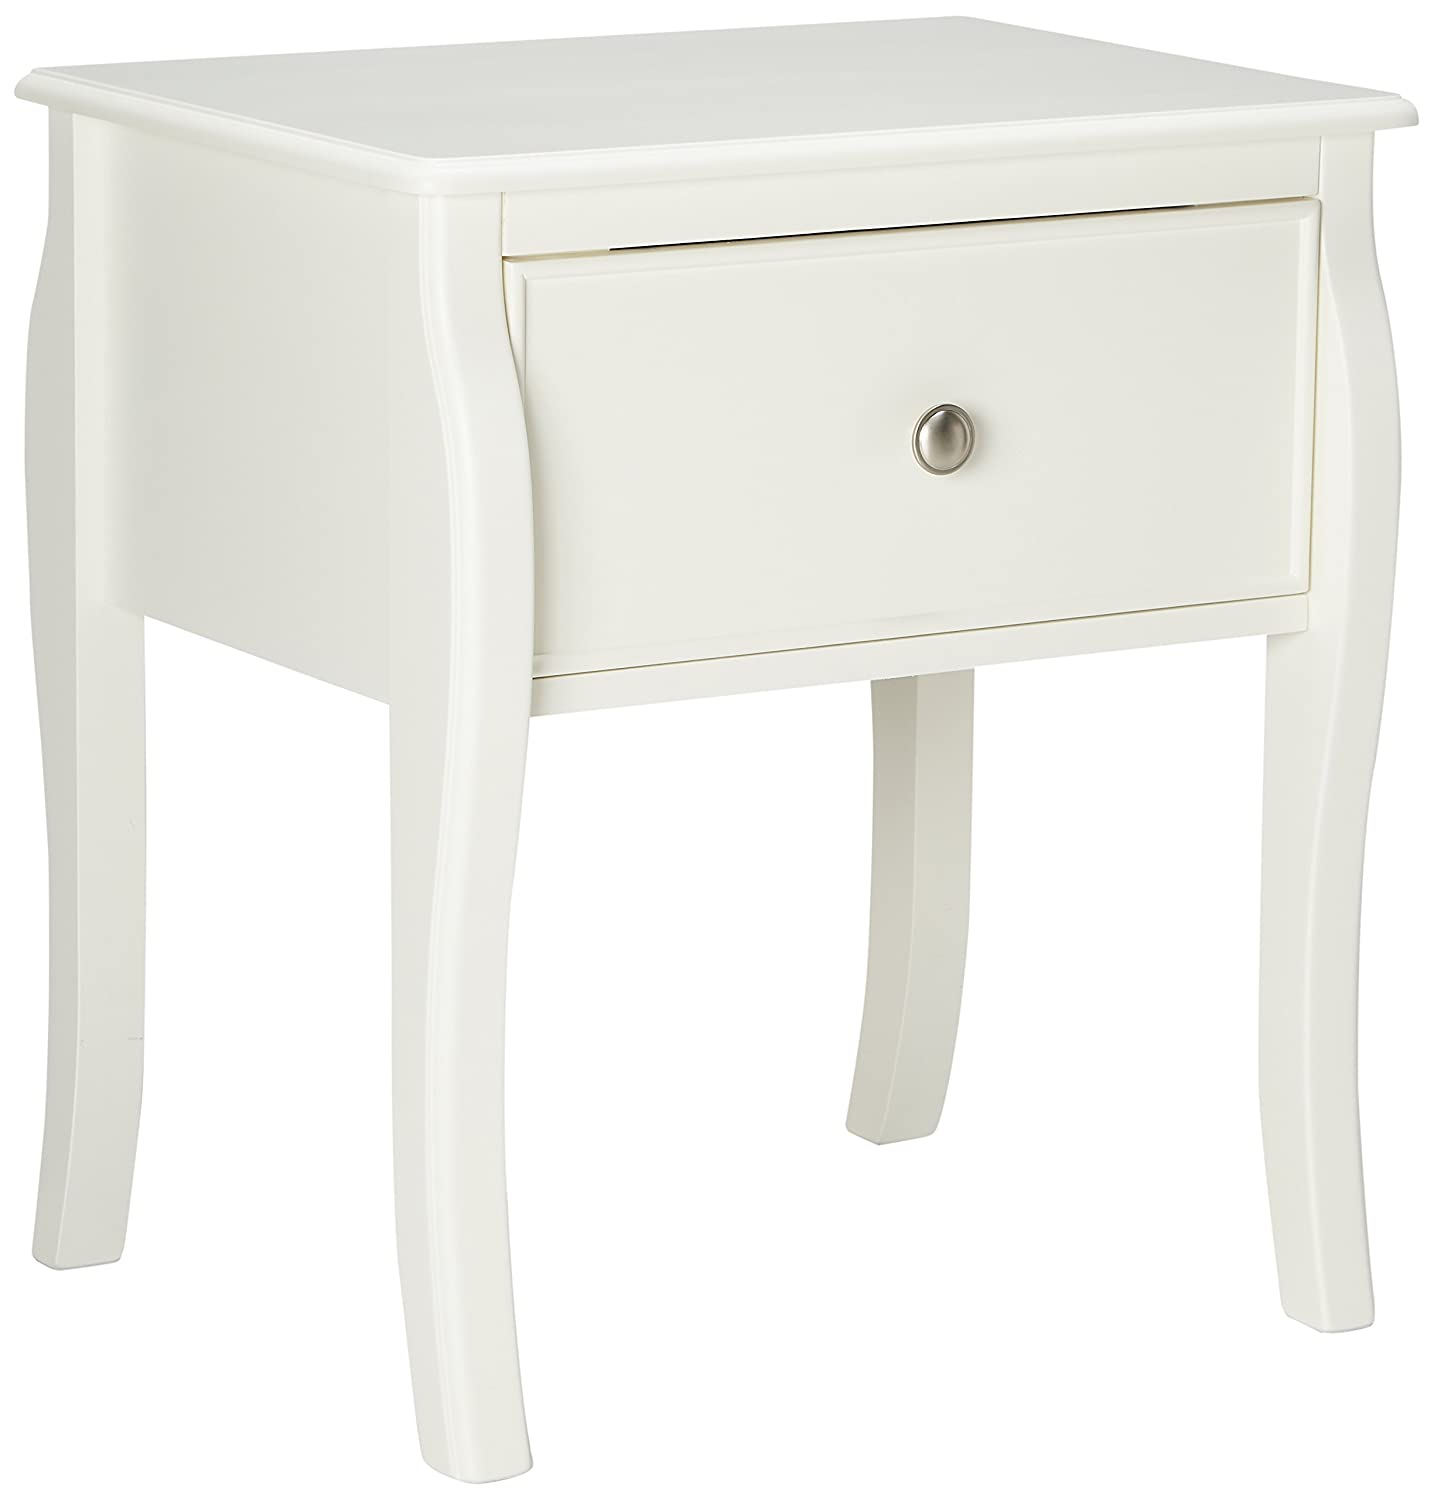 Coaster Home Furnishings CO- Dominique 1-Drawer Nightstand, White